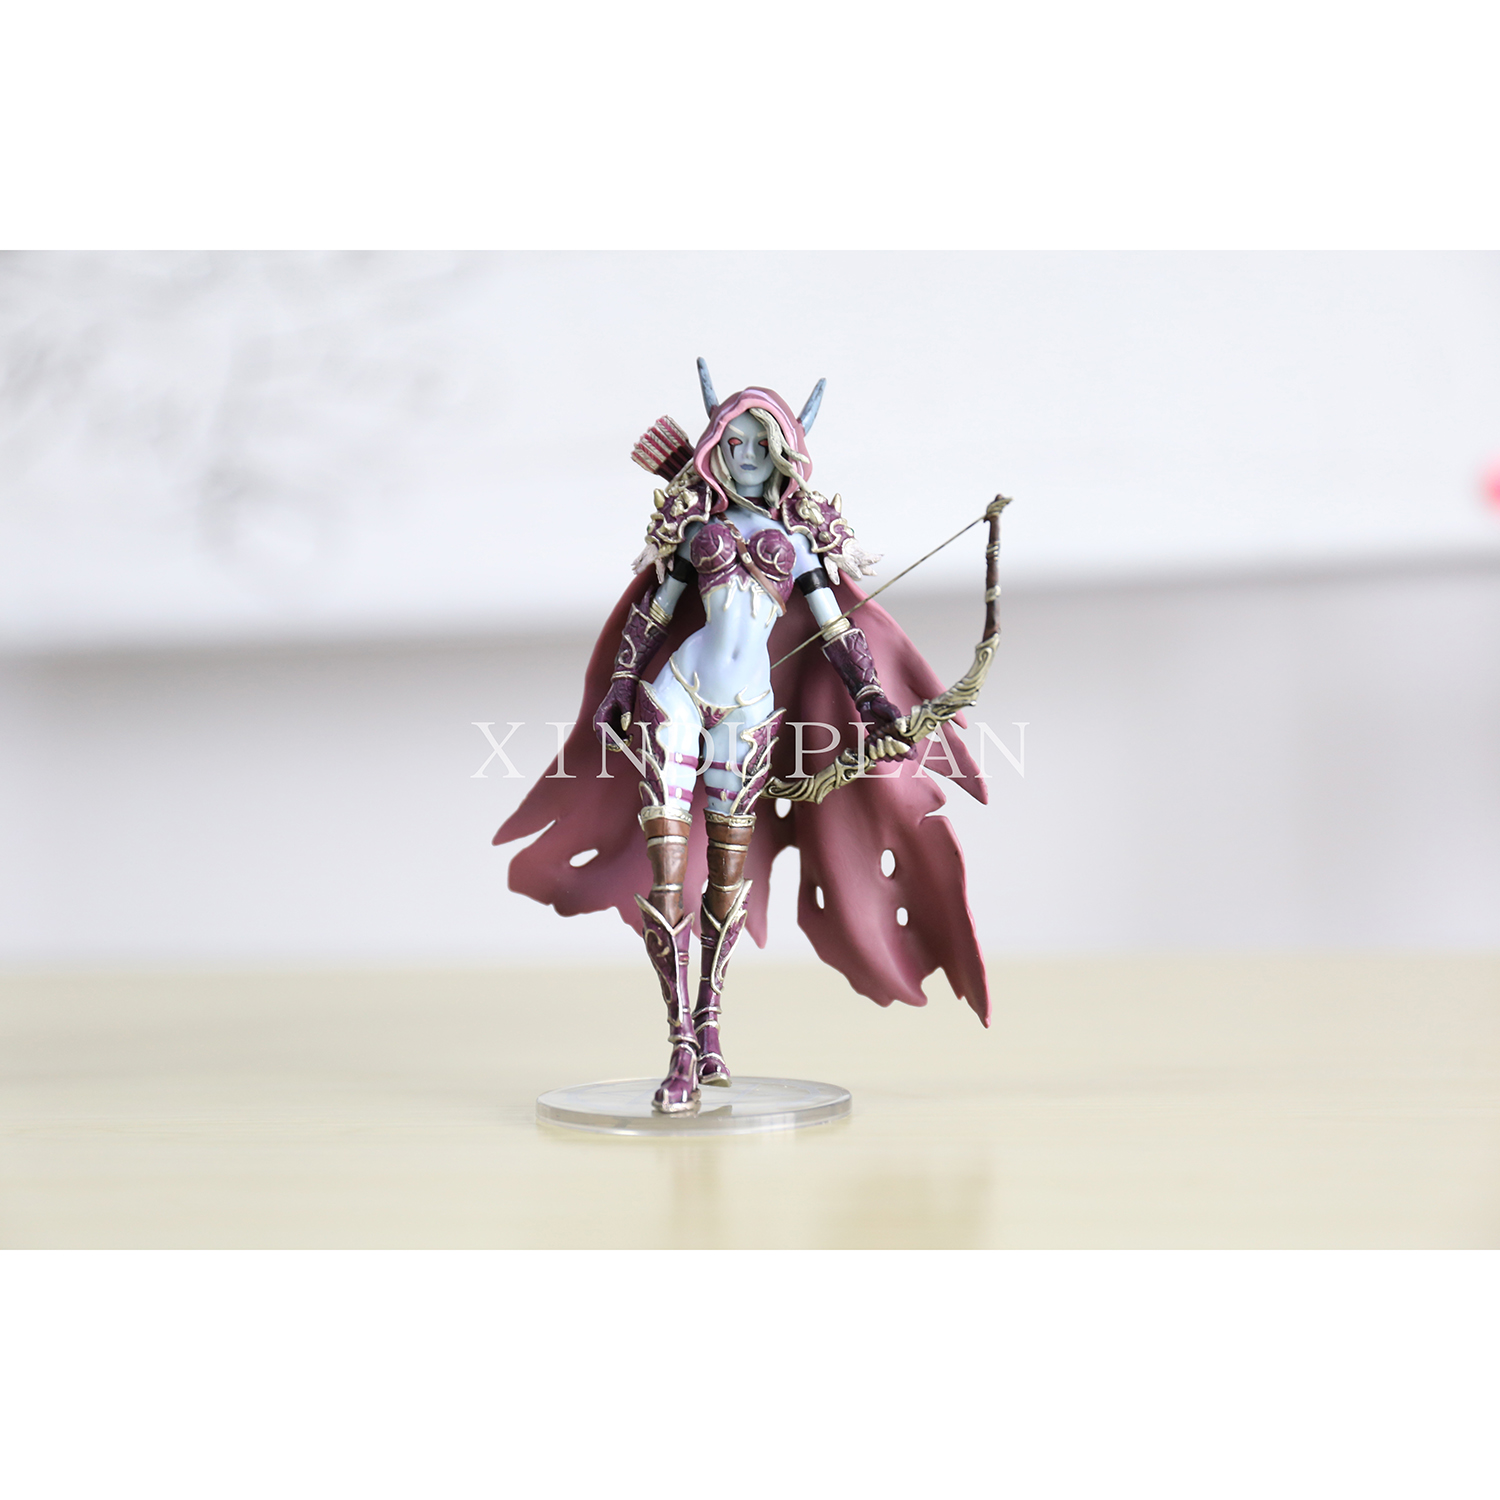 XINDUPLAN NEW Dota 2 Darkness Ranger Lady Sylvanas Windrunner Action Figure Toys 14cm PVC Game Kids PVC Collection Model 0315 sylvanas windrunner classic toys for boys model figure without retail box